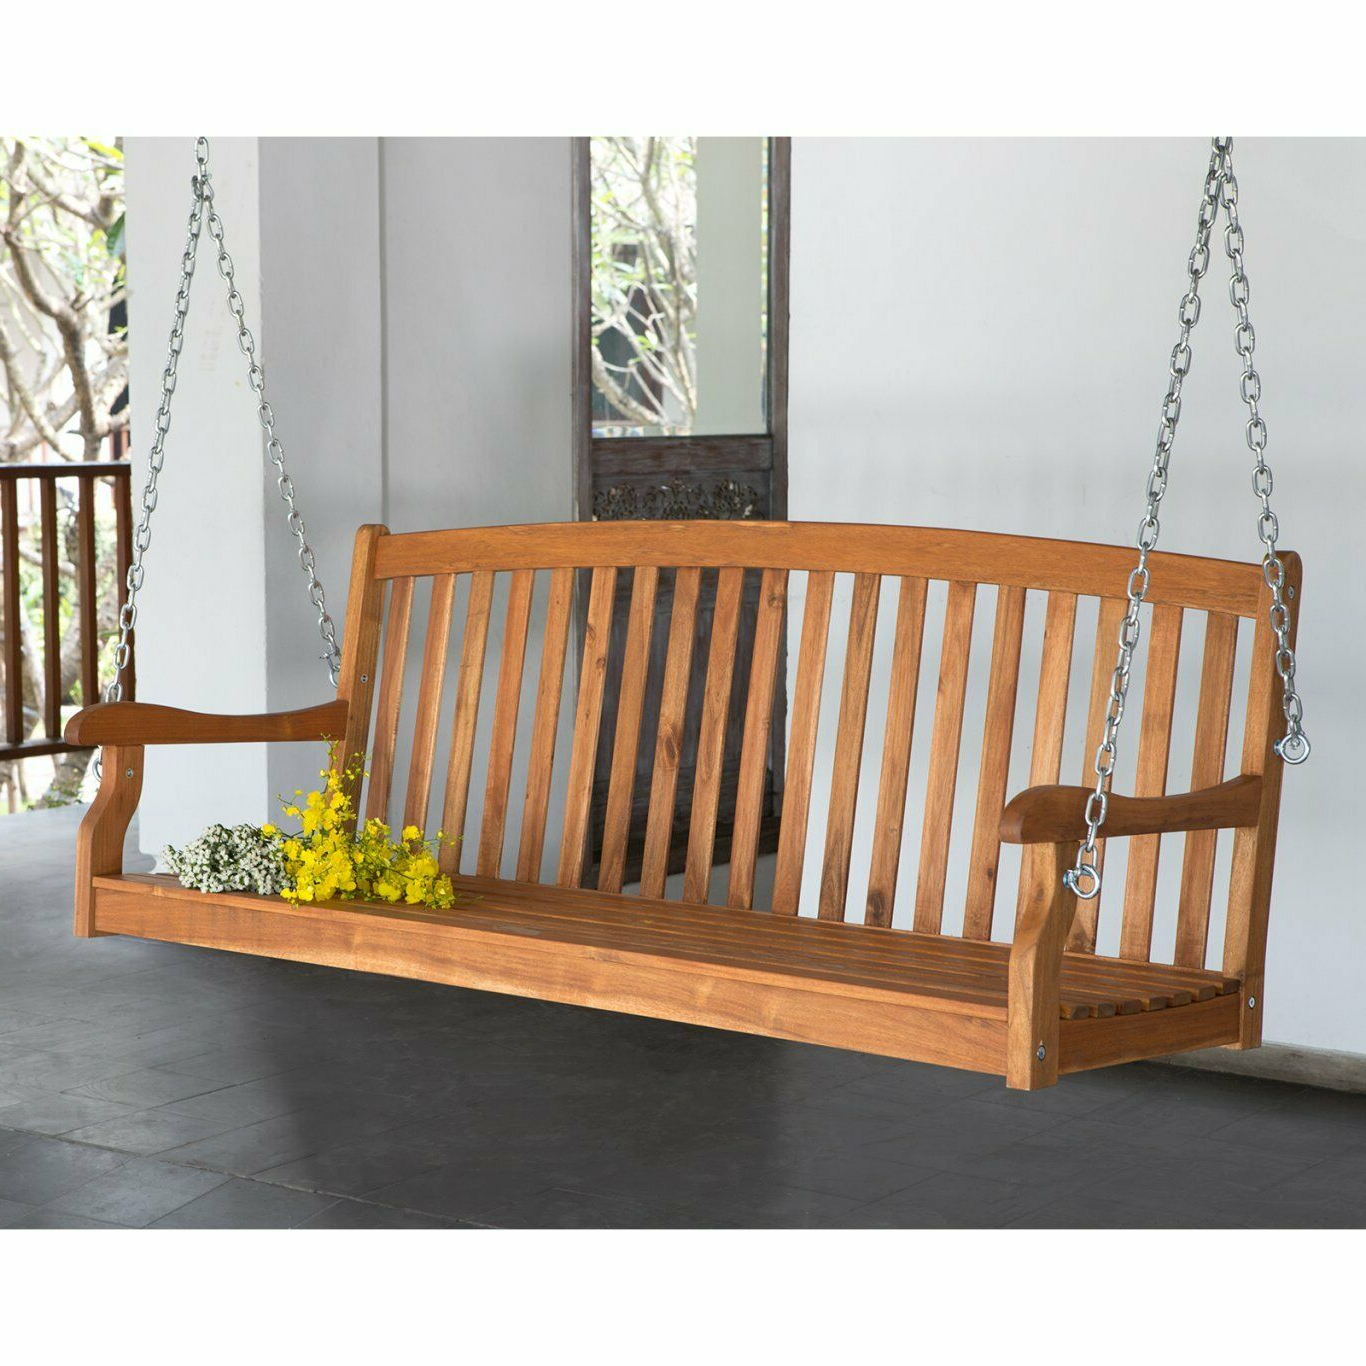 5 Ft Wood Porch Swing Slat Back 2 Person Bench Seat Loveseat Tree Furniture New Regarding Widely Used 2 Person White Wood Outdoor Swings (View 14 of 30)